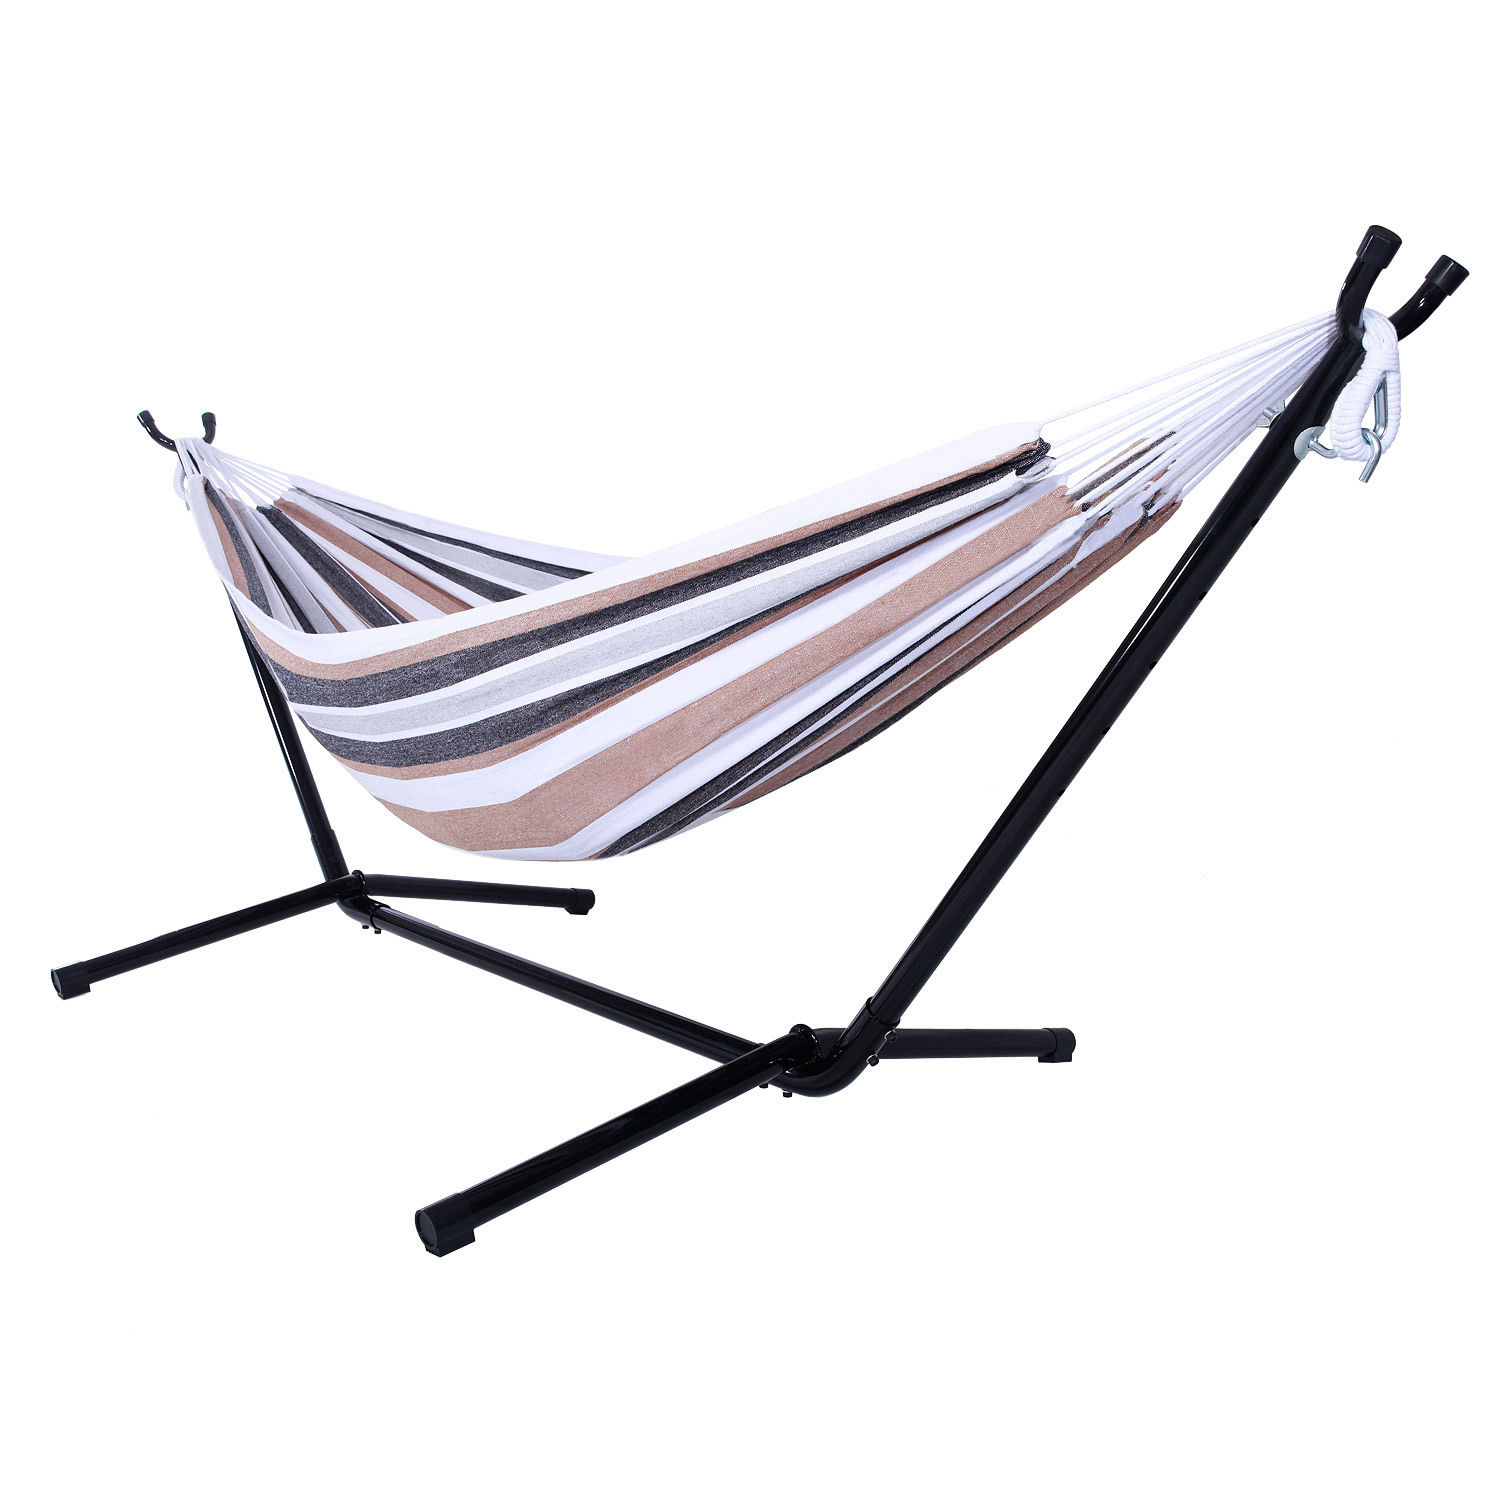 GHP 440-Lbs Capacity Cotton Coffee Stripe Double Swing Hammock Bed with Steel Stand